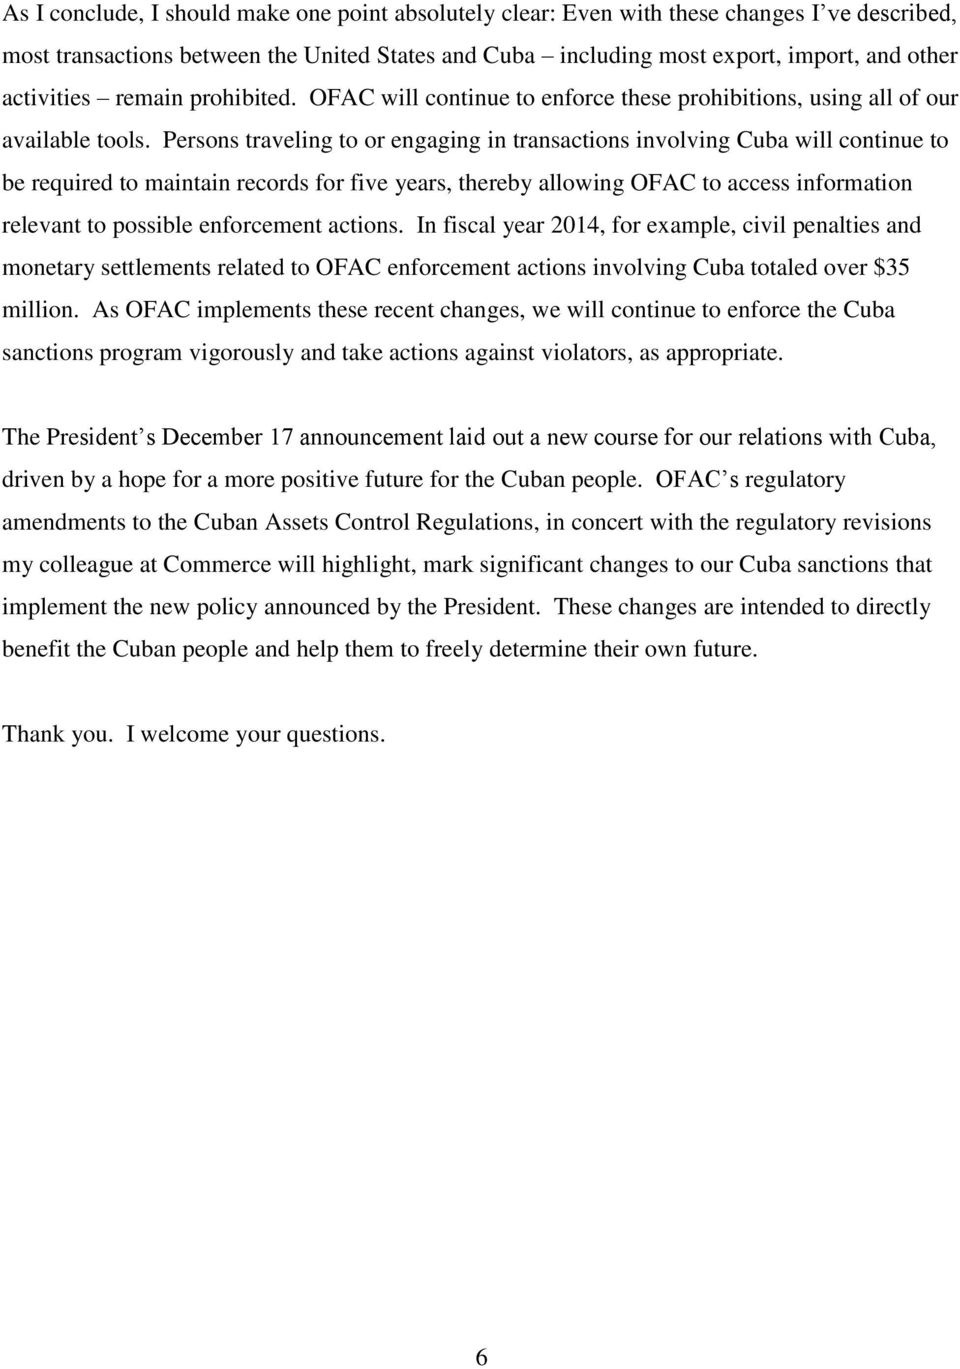 Persons traveling to or engaging in transactions involving Cuba will continue to be required to maintain records for five years, thereby allowing OFAC to access information relevant to possible